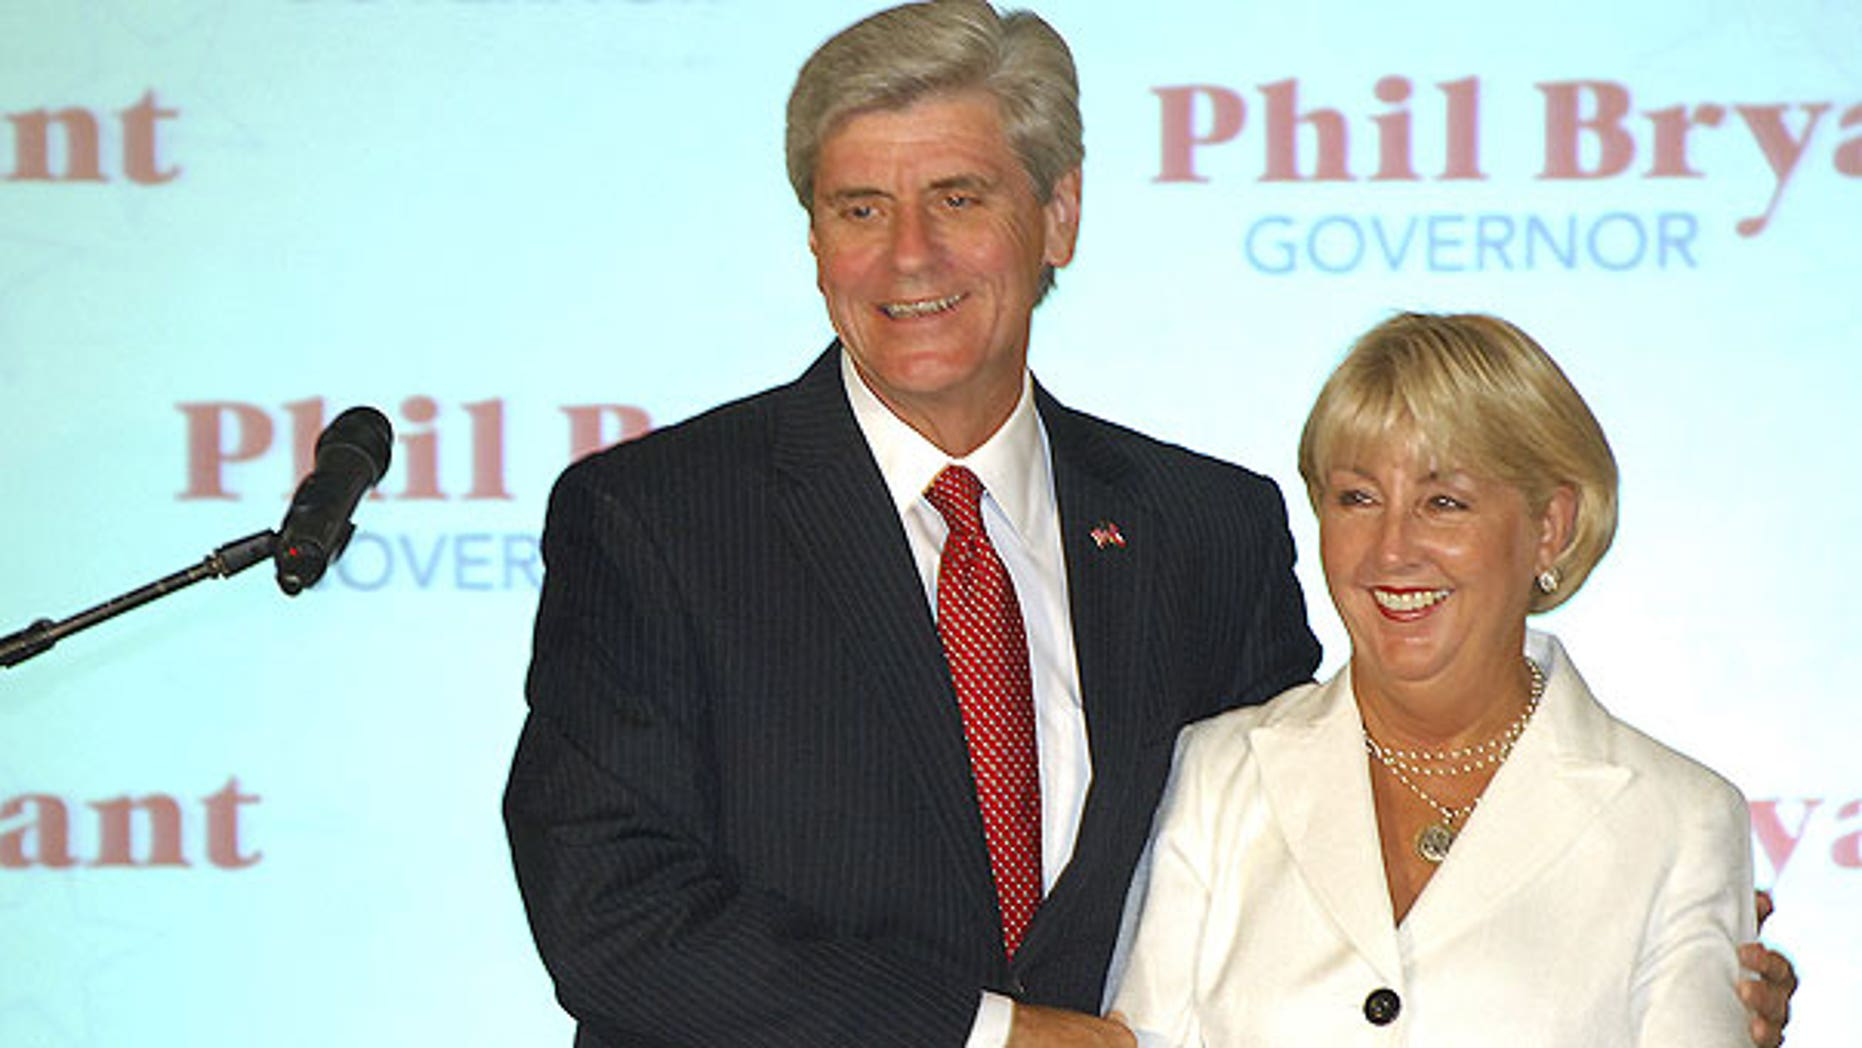 Aug. 2: Gubernatorial candidate Phil Bryant holds wife, Debra, as he greets supporters after being declared the winner of the Republican primary at the Old Capitol Inn in downtown Jackson, Miss.